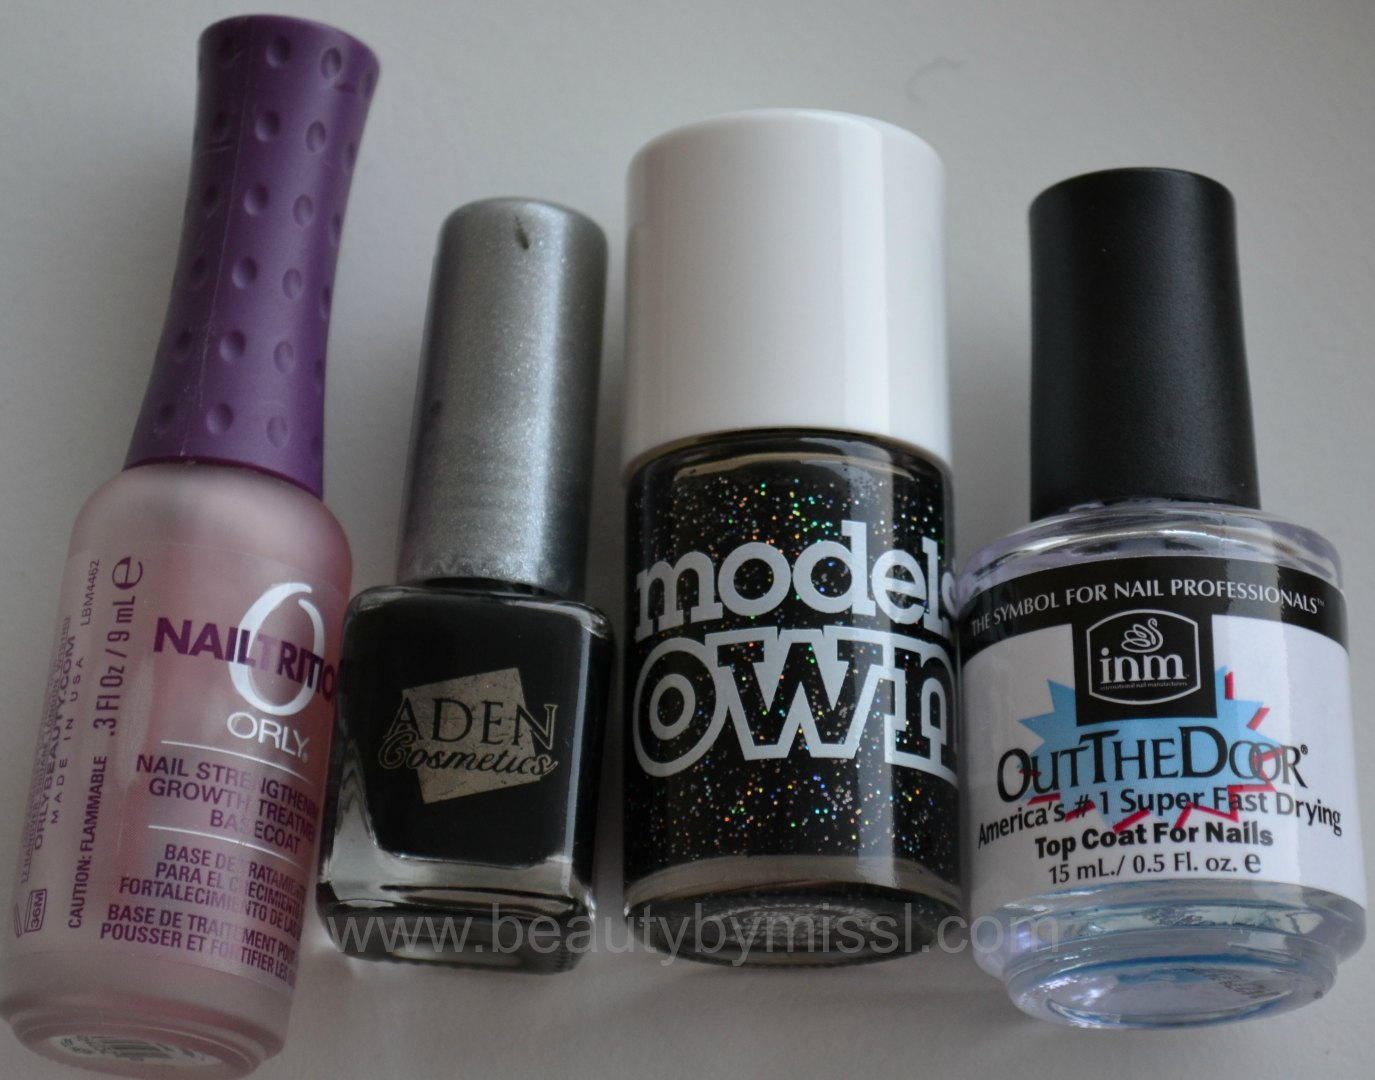 orly, aden cosmetics, models own, INM OTD